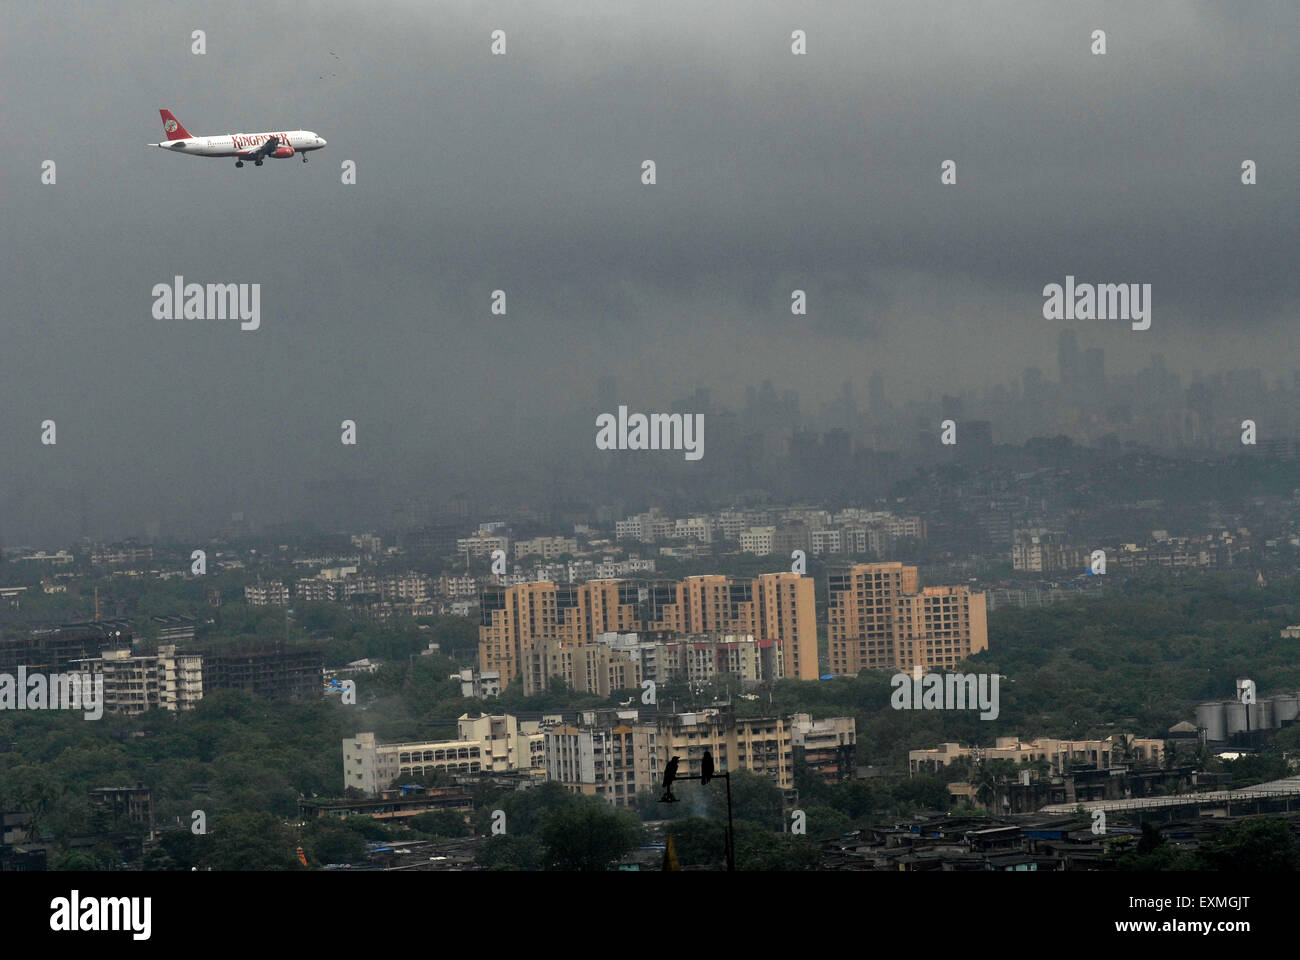 A Kingfisher Airlines commercial plane approaching the airport amidst dense monsoon clouds in Bombay Mumbai - Stock Image